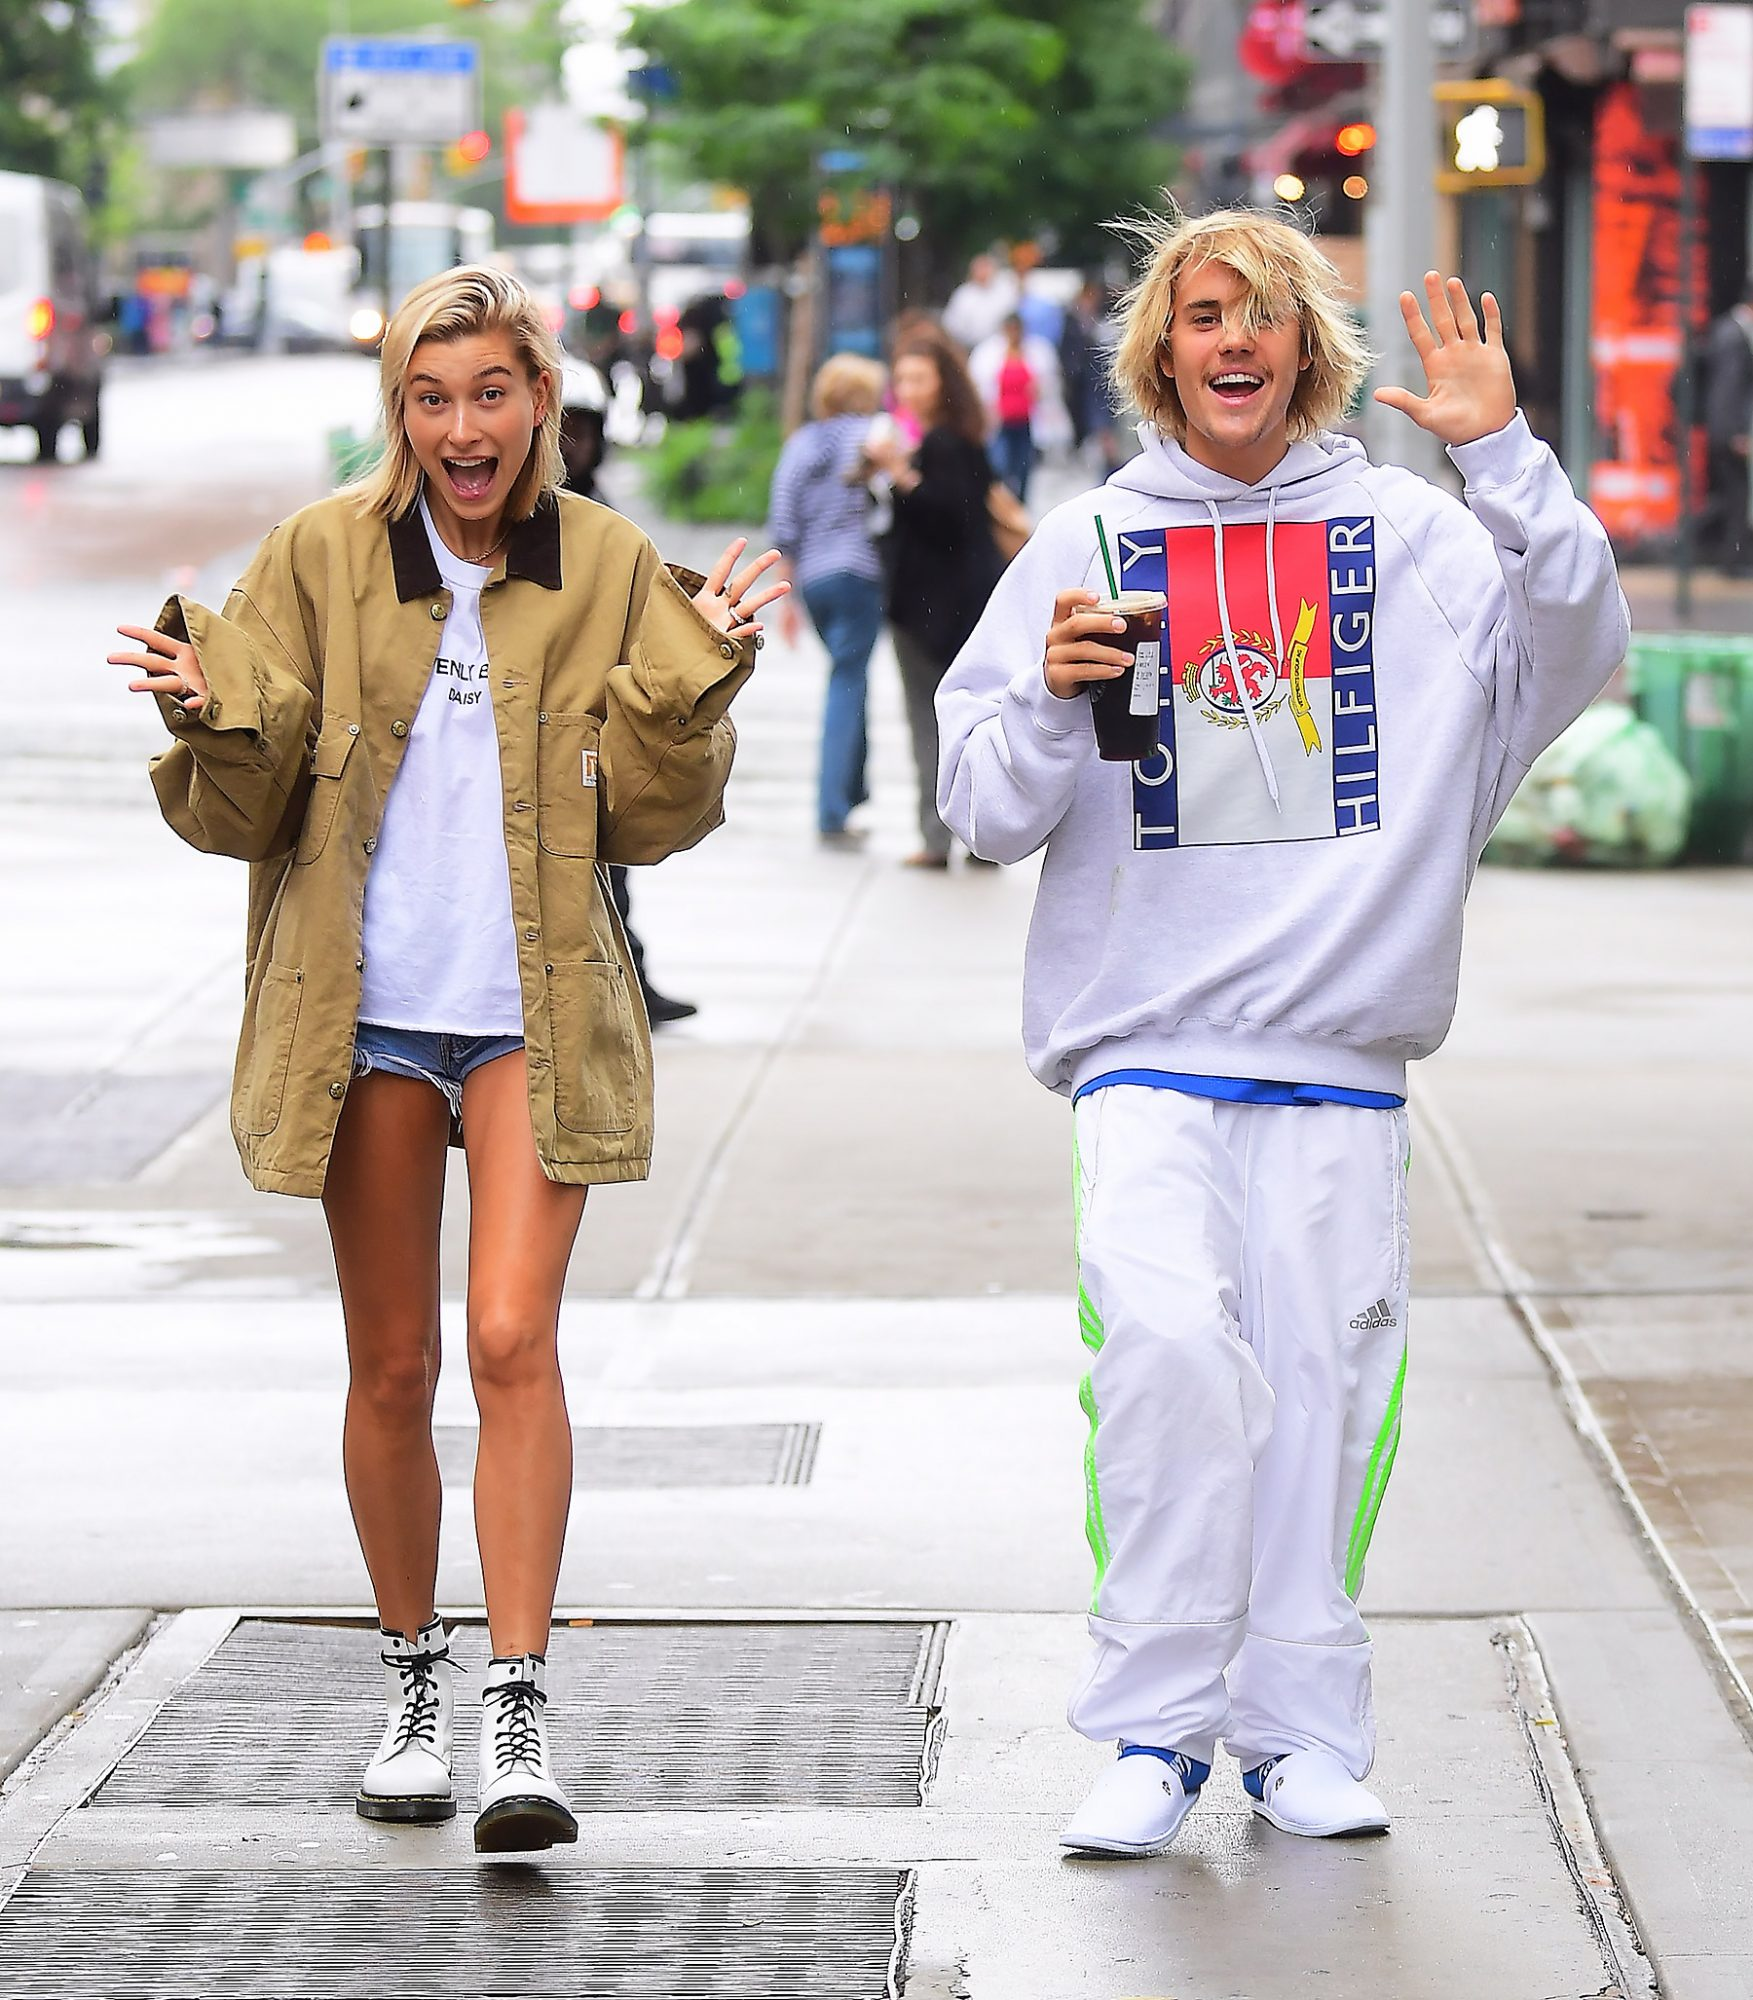 Justin Bieber and Hailey Baldwin Look Like a Happy Couple as they Grab Starbucks after Night Together in NYC